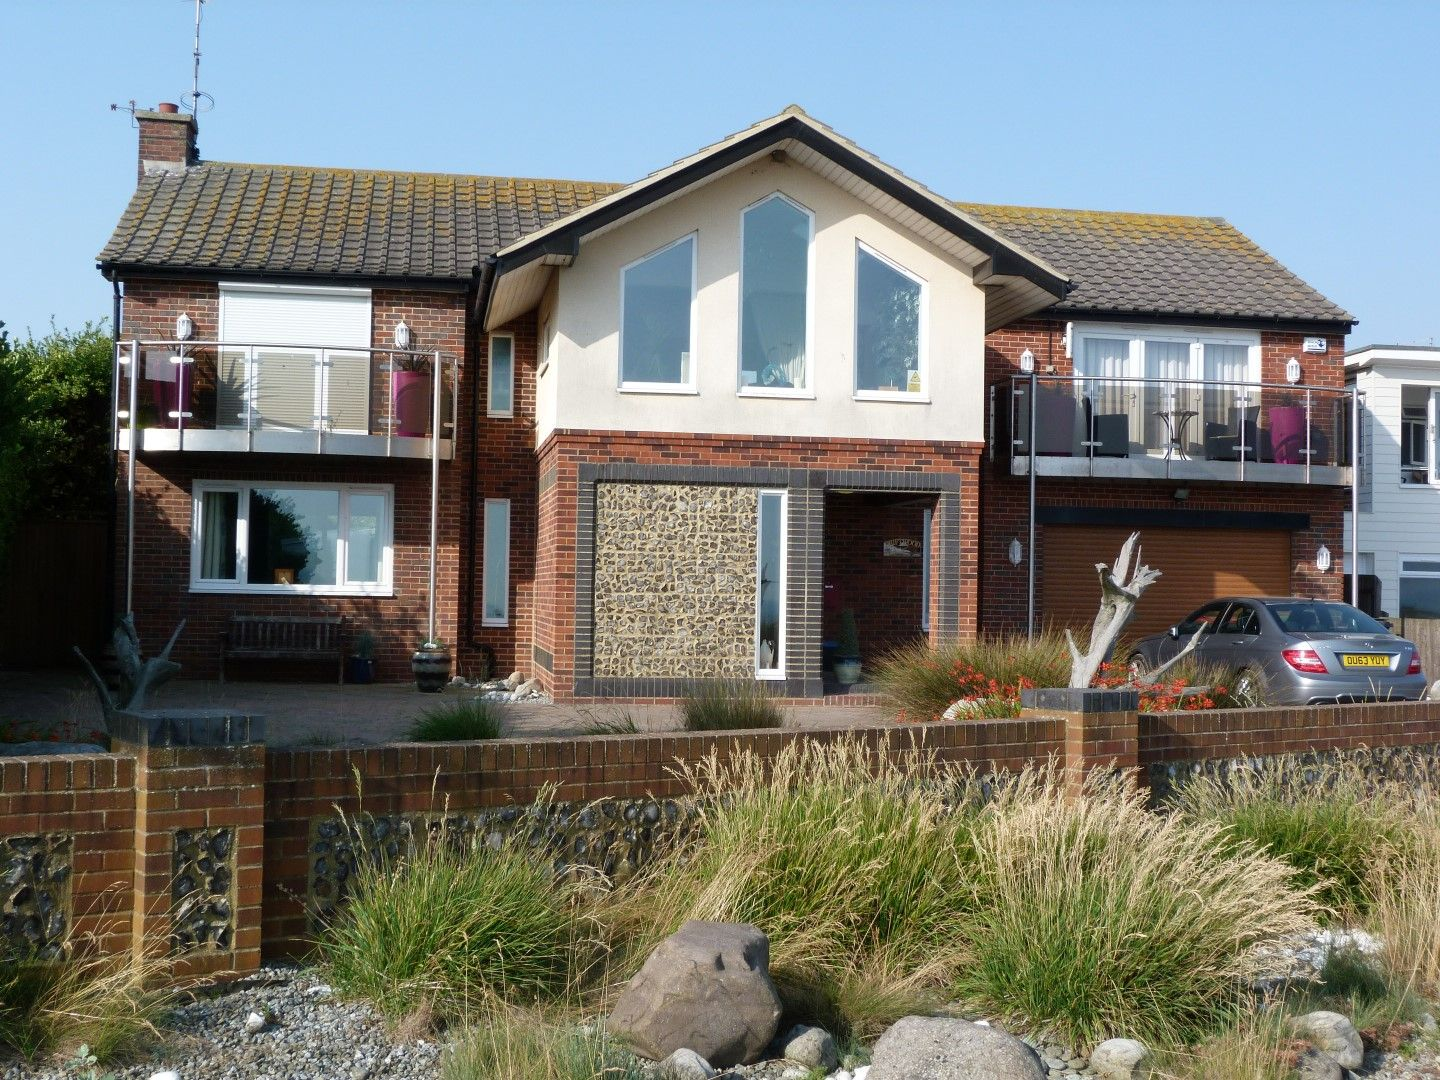 4 bedroom detached house For Sale in Broadstairs - Photograph 1